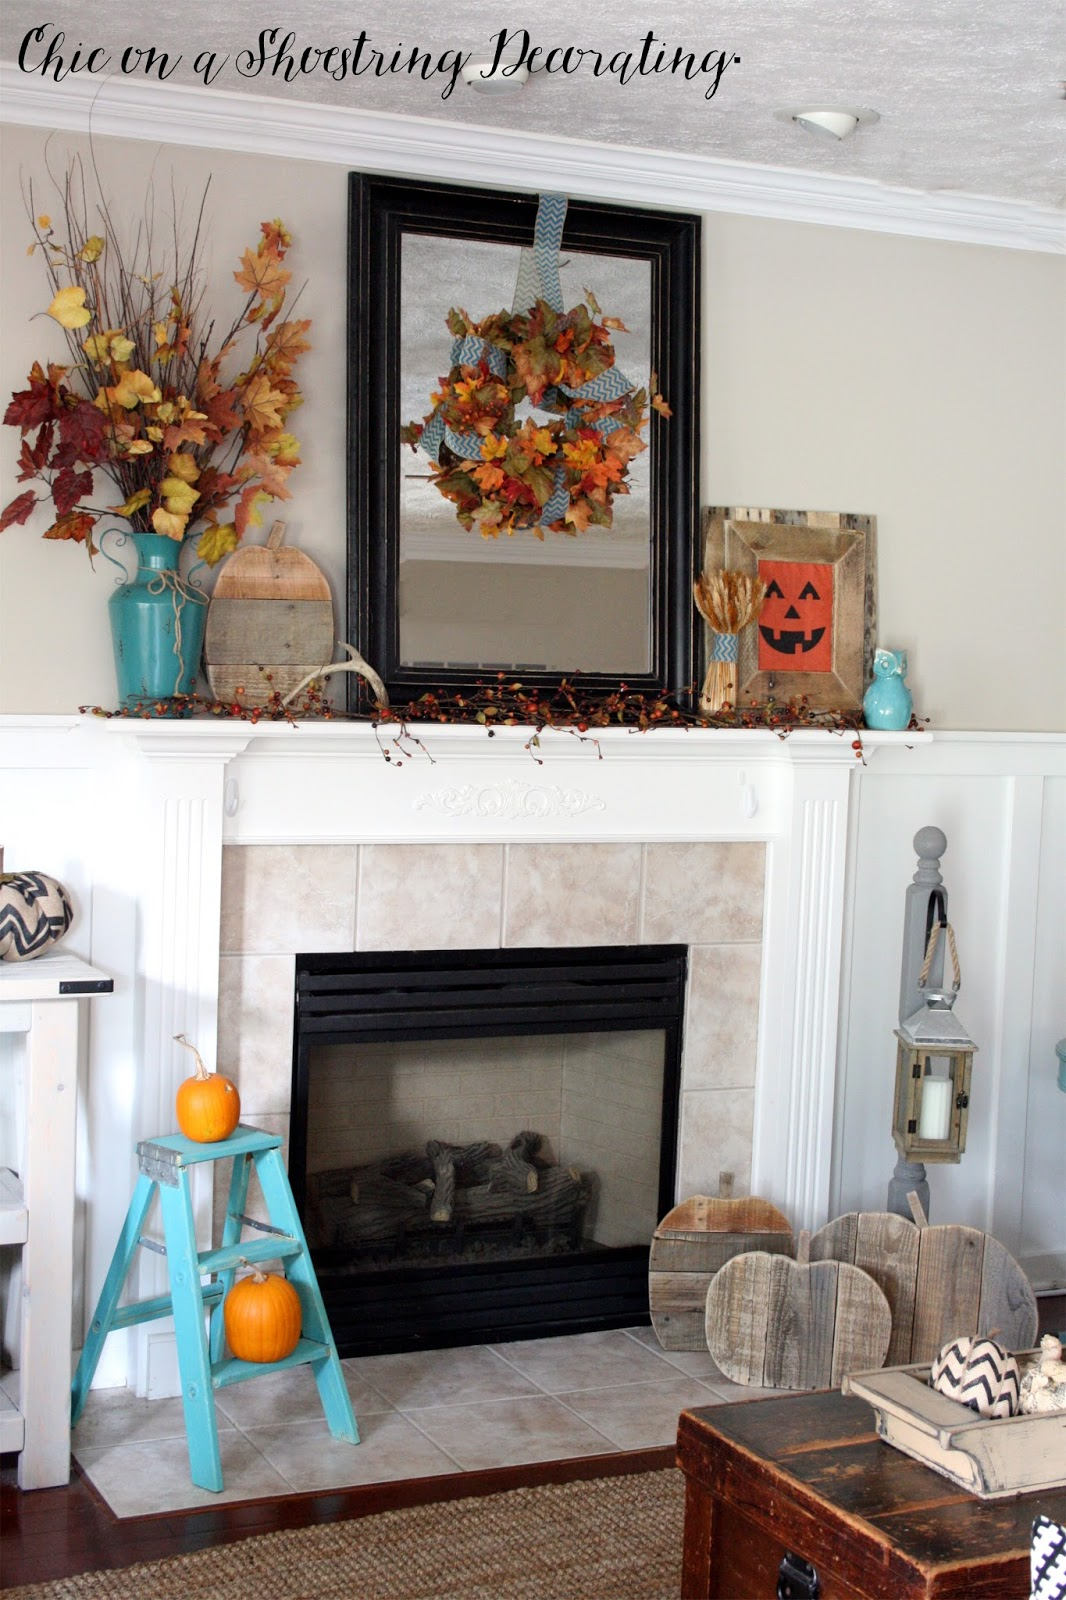 chic on a shoestring decorating fall farmhouse decor to